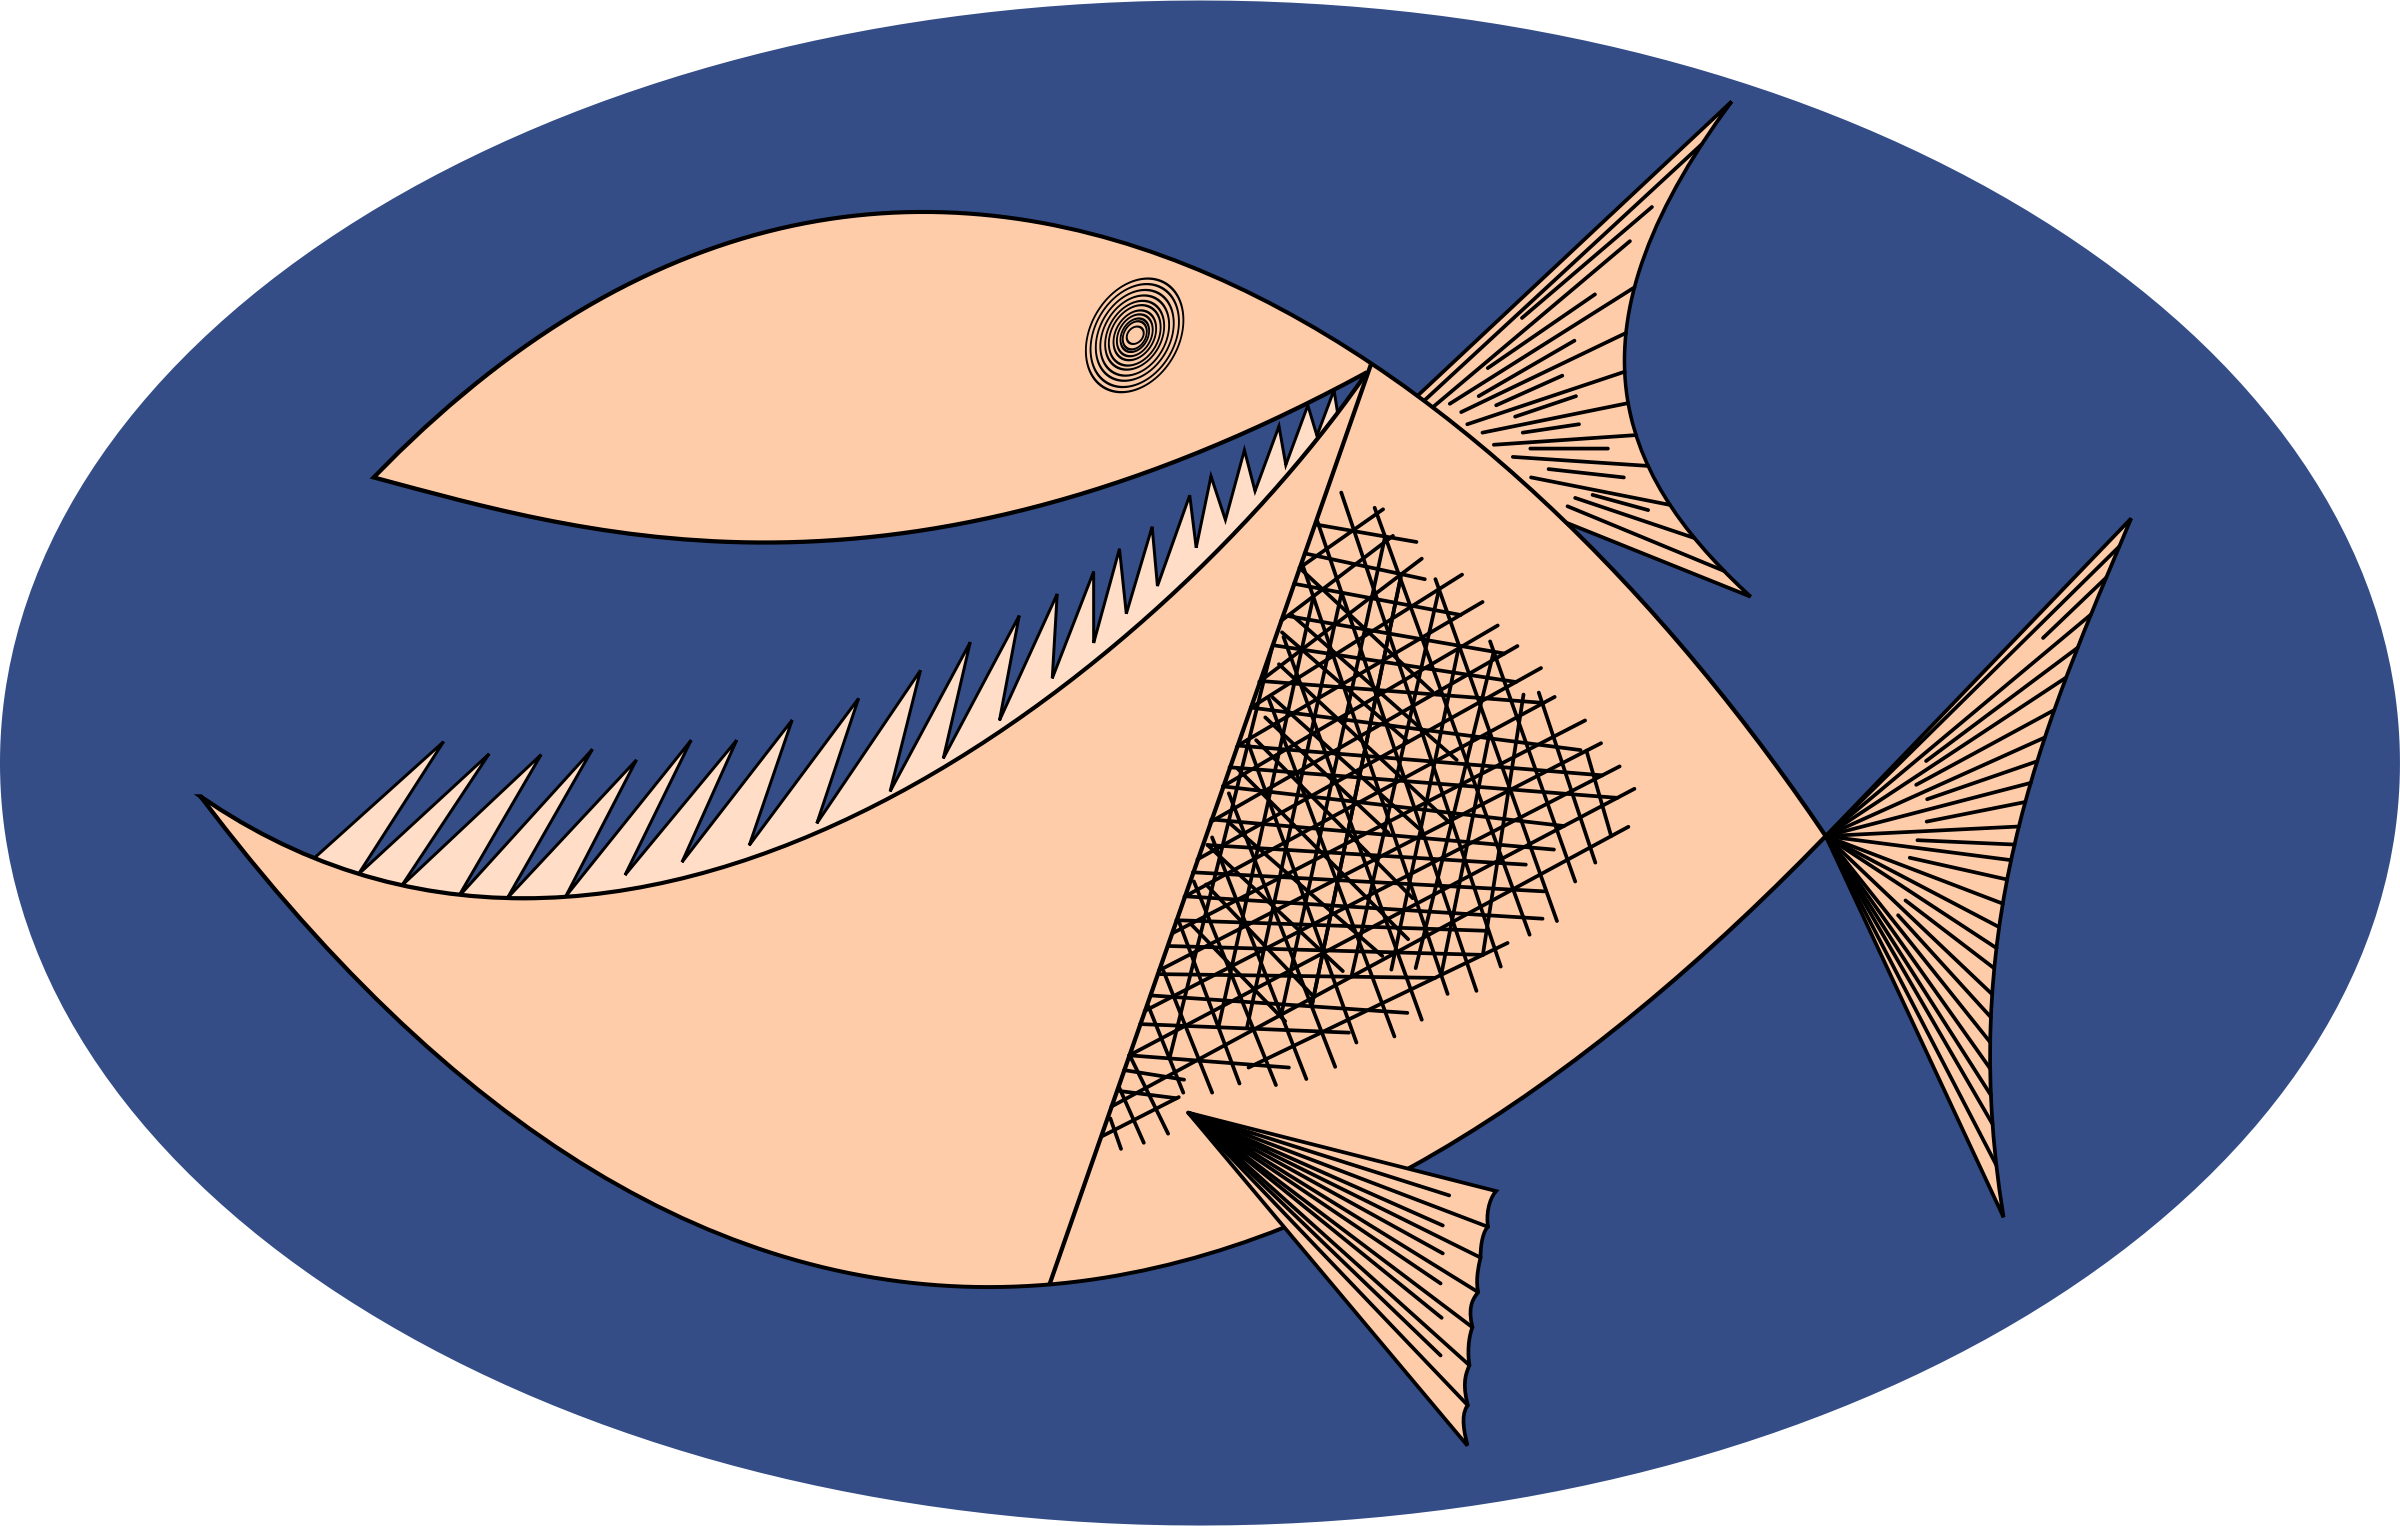 Clipart - Fish by Rones